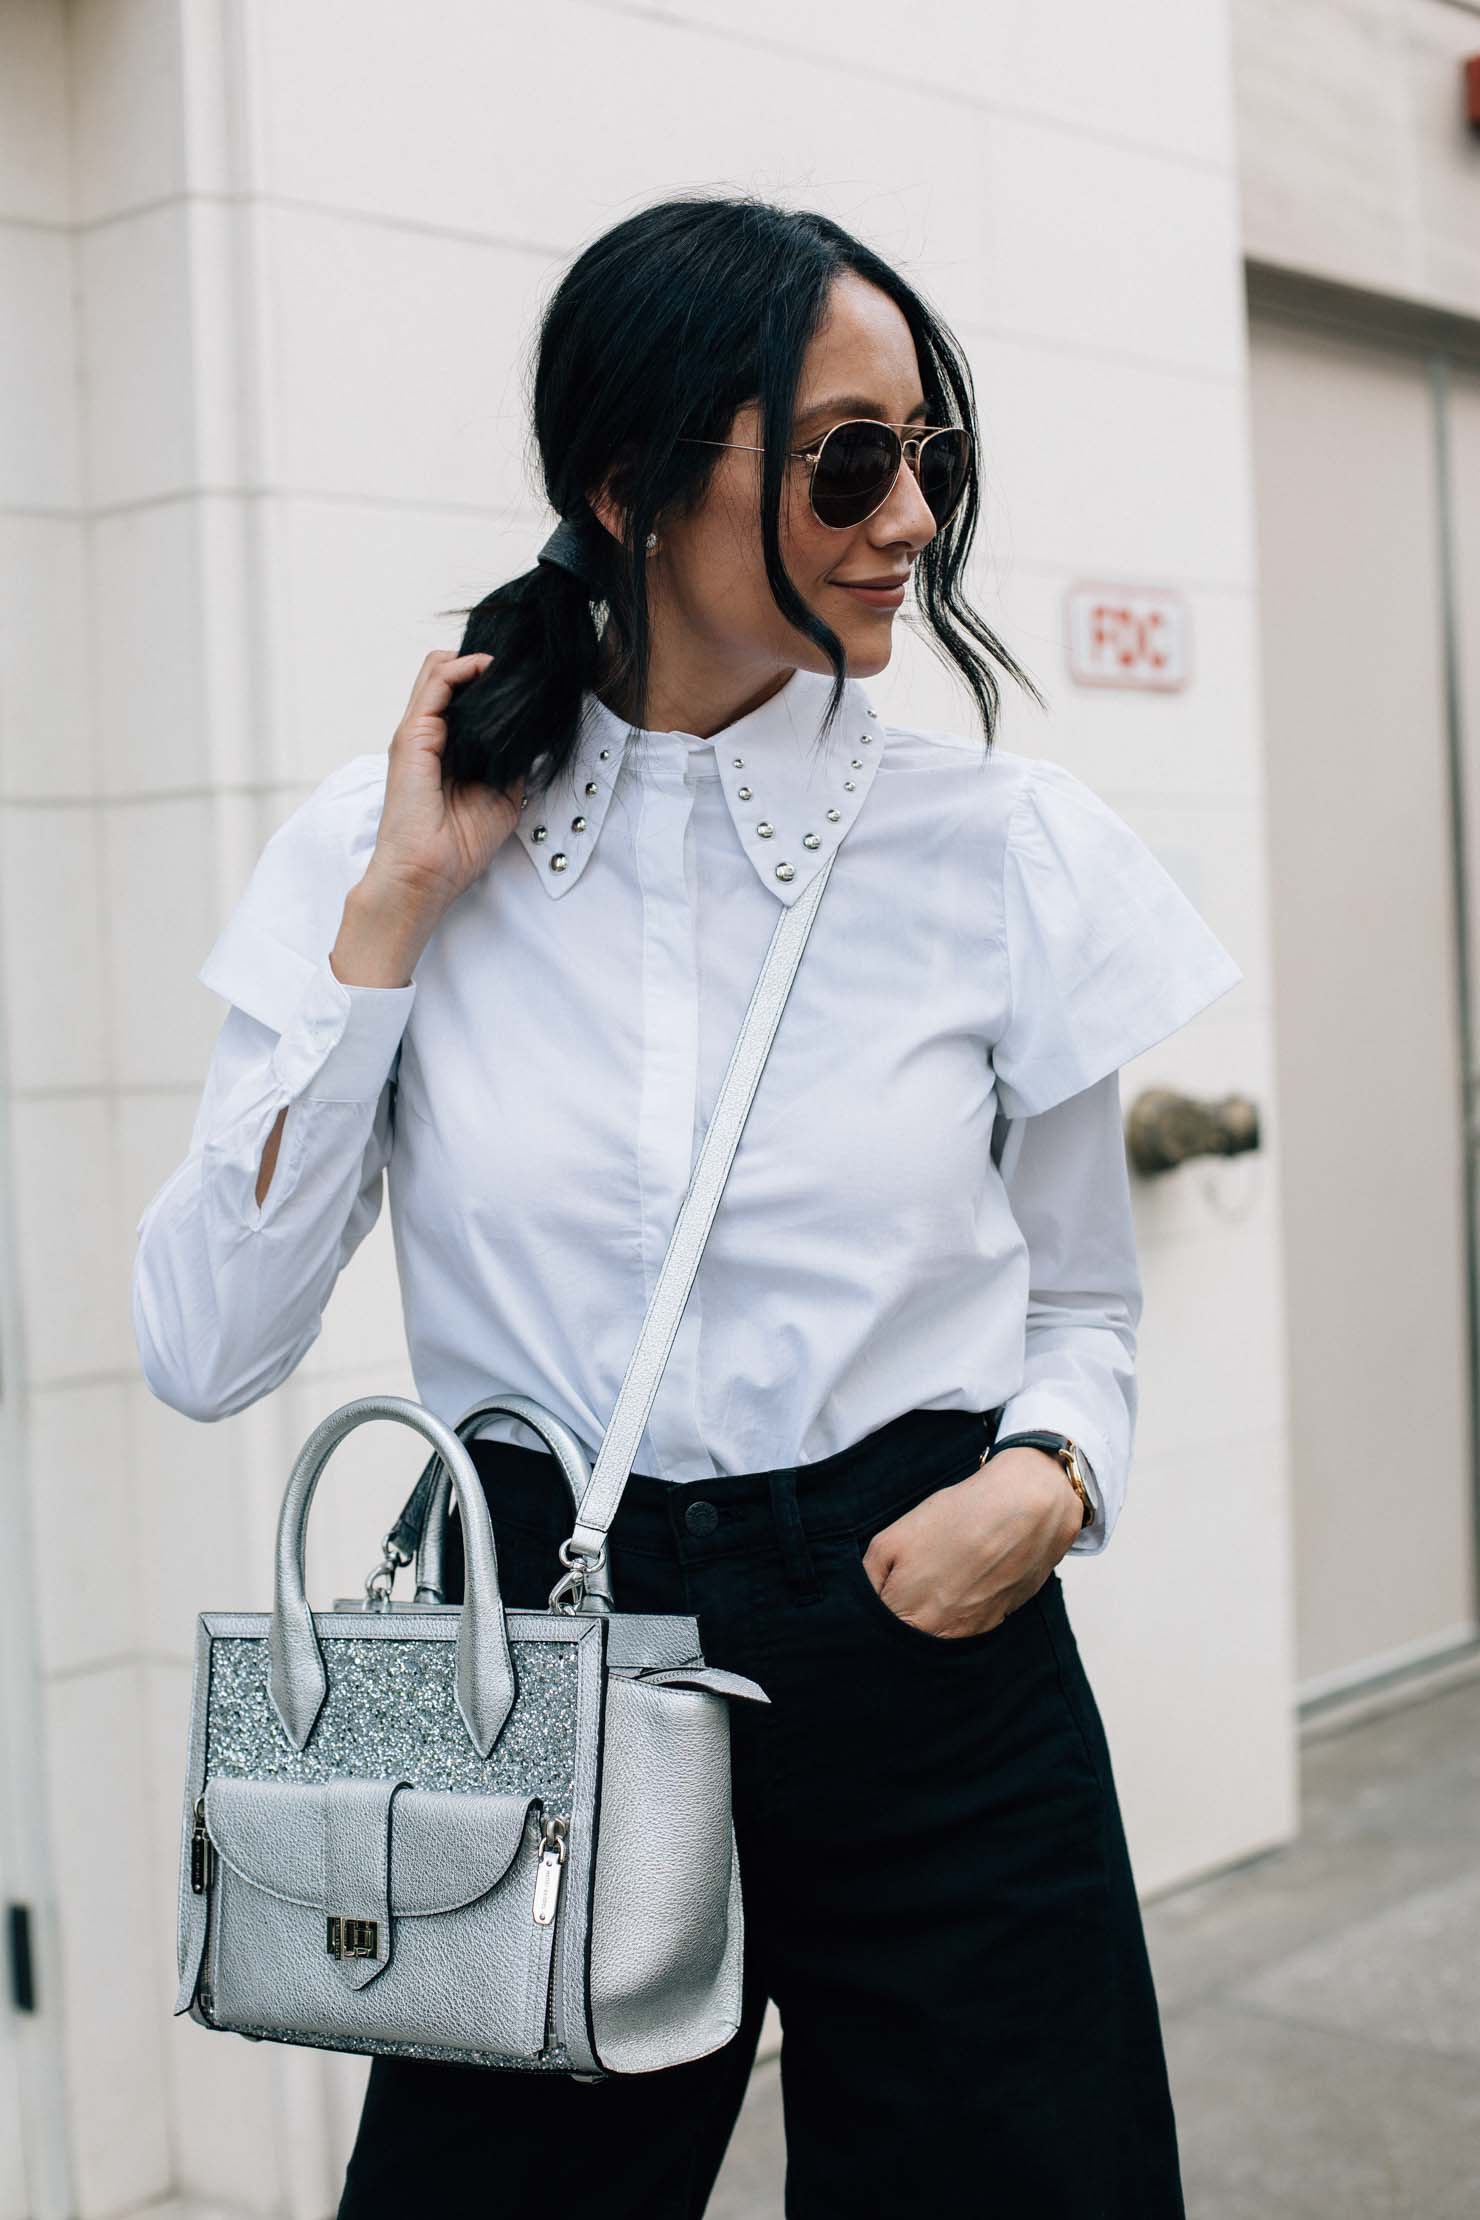 Style blogger Lilly Beltran of Daily Craving in a chic look wearing a white shirt with stud and ruffle detail, black denim culottes and metallic Henri Bendel bag